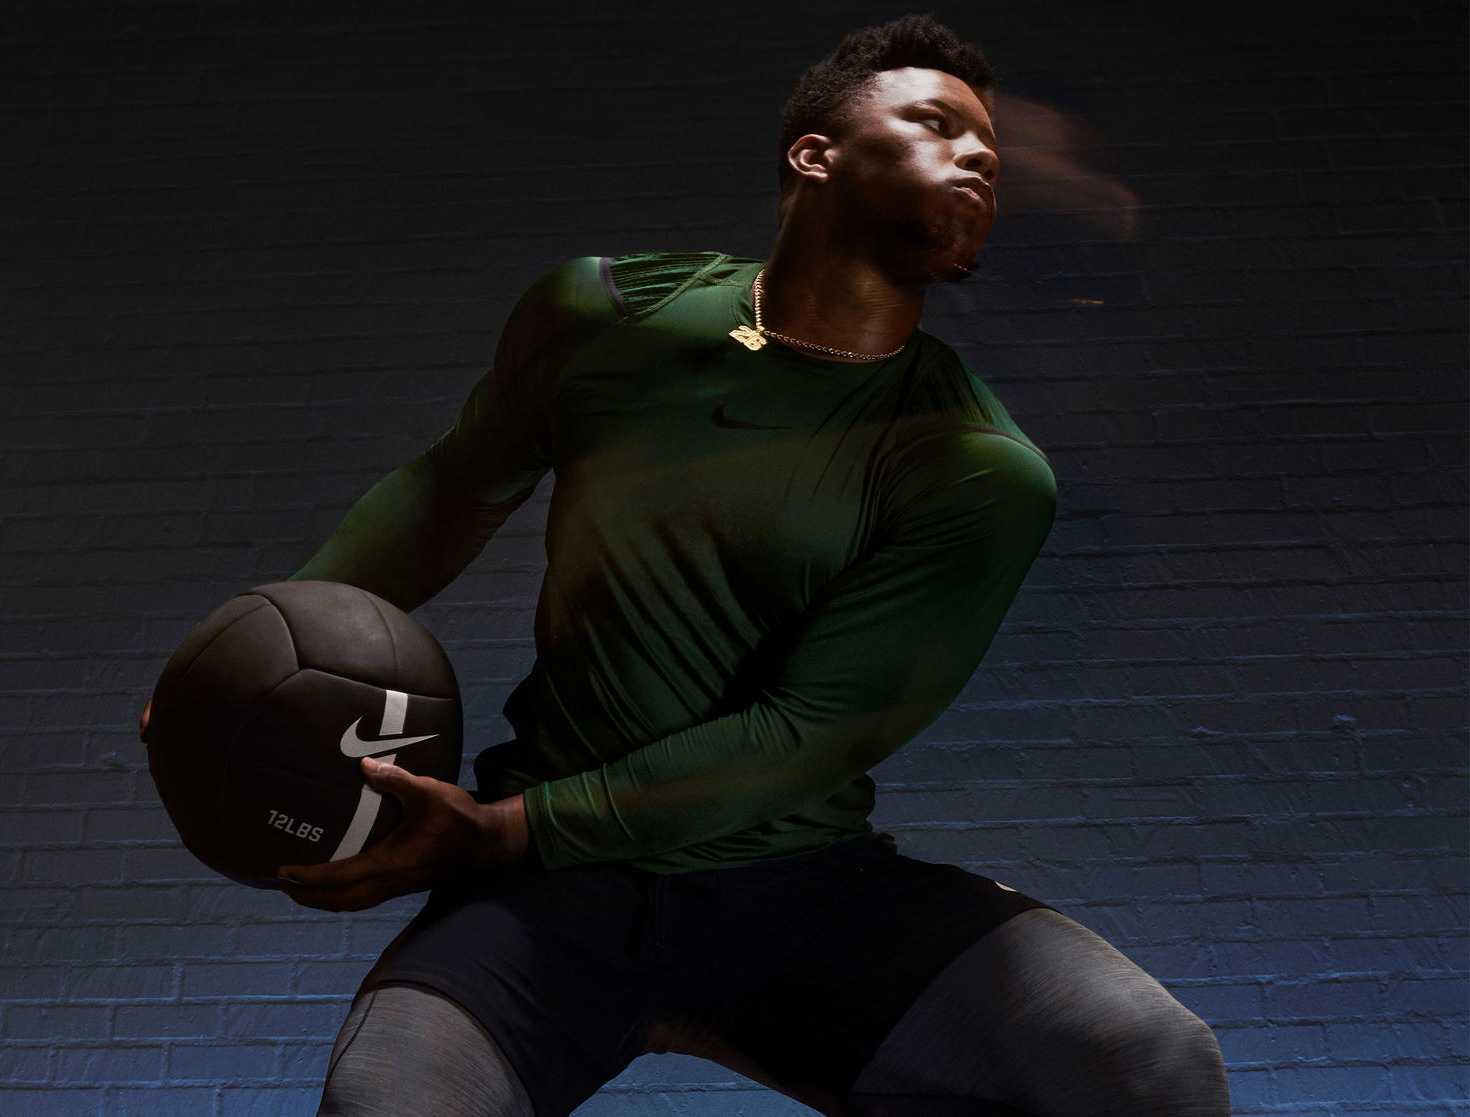 Nike Introduces Body Heat Sensitive AeroAdapt Fabric at werd.com